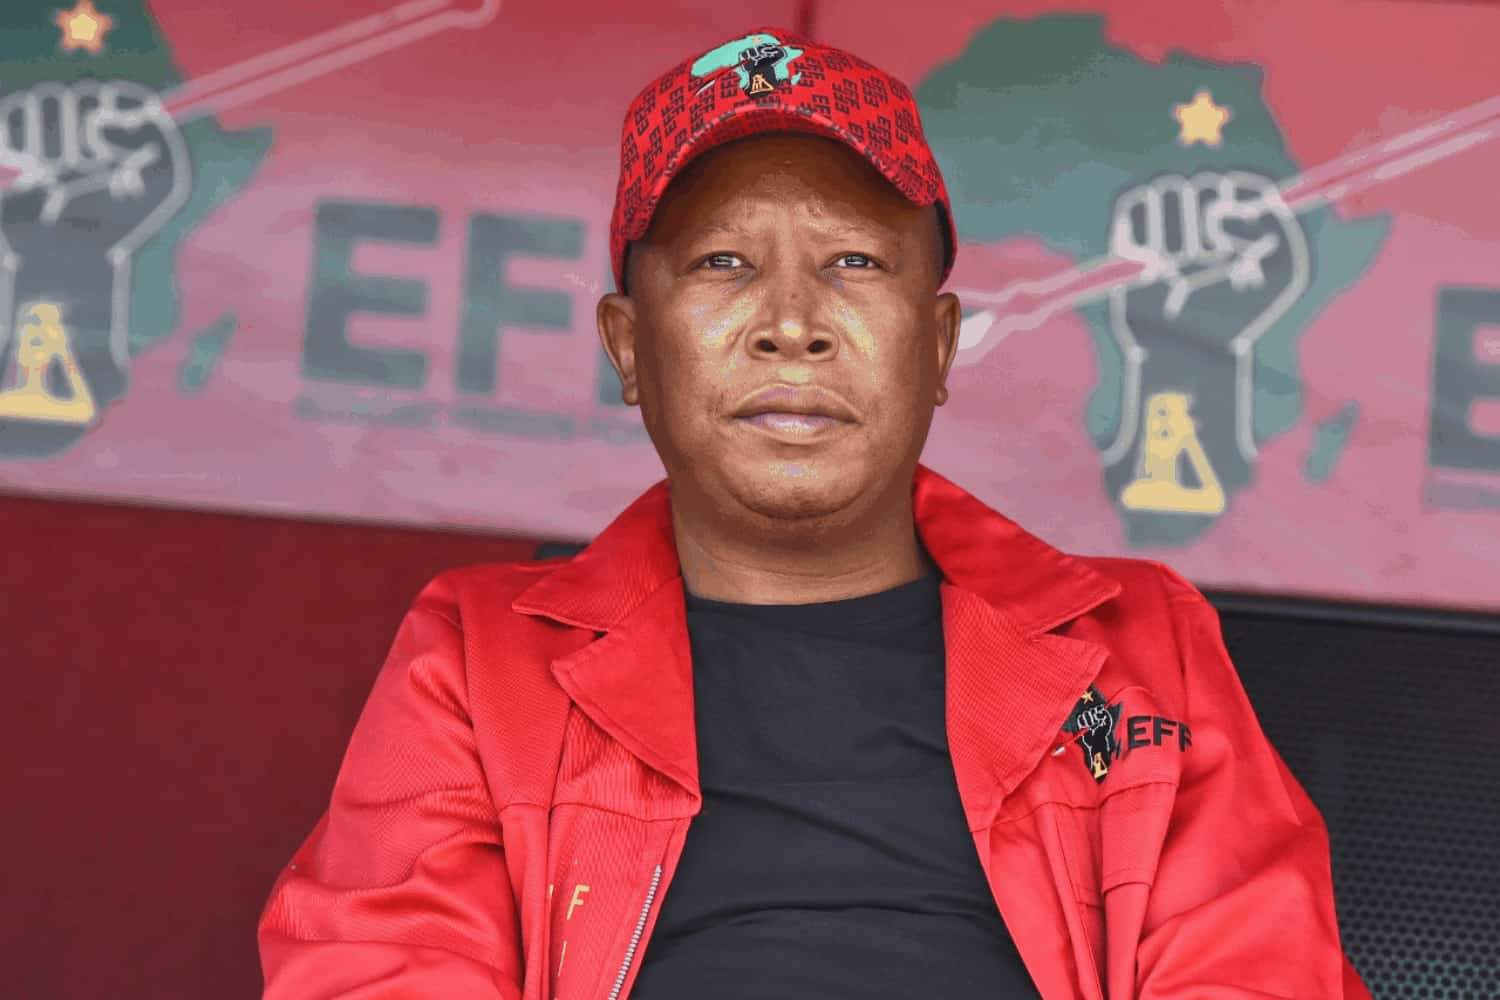 EFF leader Julius Malema speaking during a community meeting in Diepsloot, 11 September, 2021. Picture: Twitter @EFFSouthAfrica